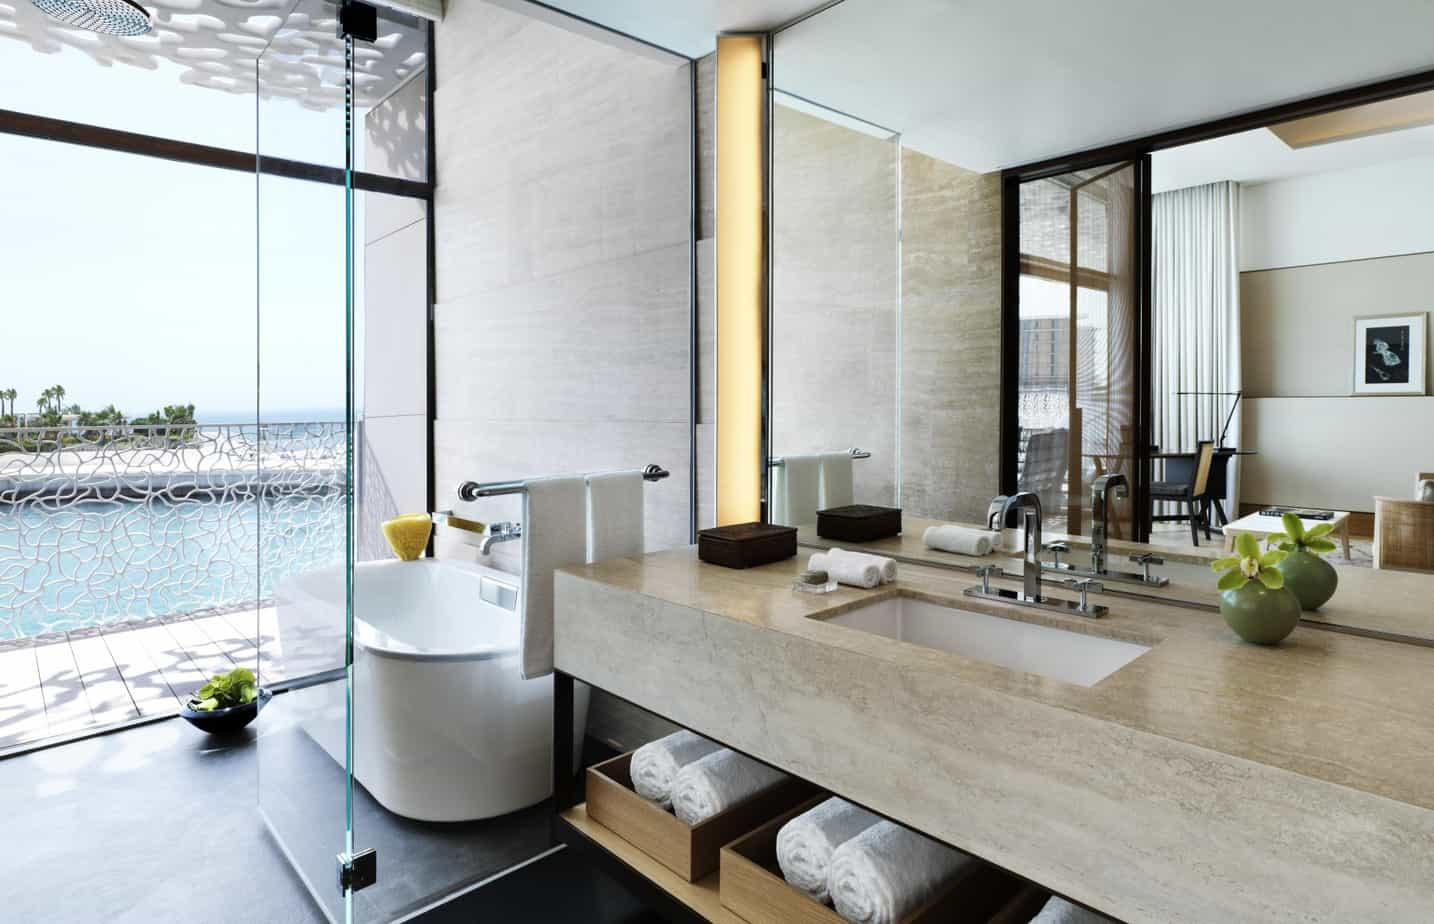 Bulgari-Deluxe-Ocean-View-1-Bathroom